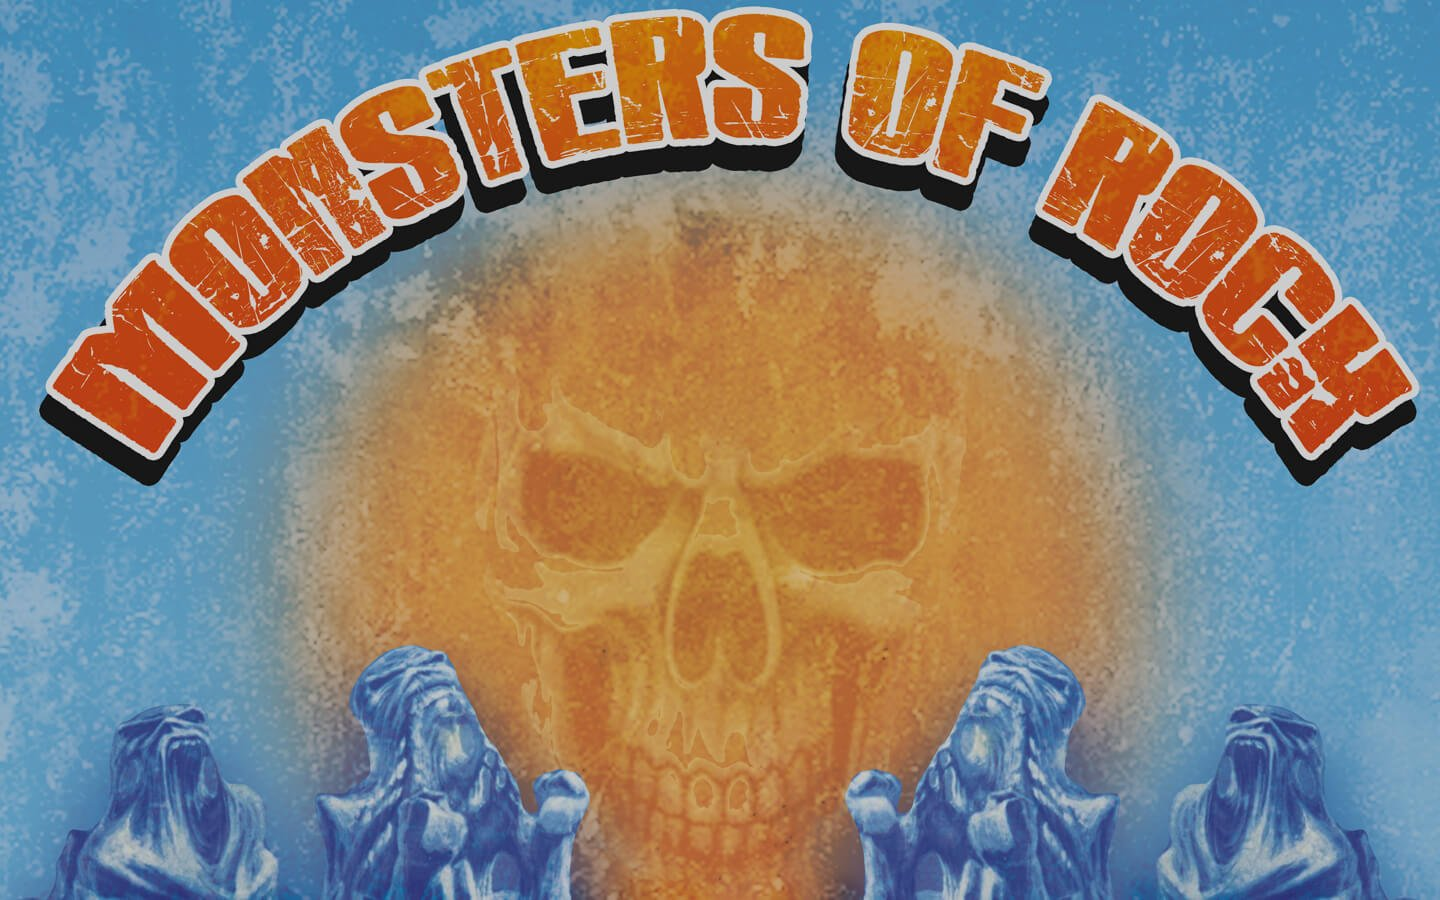 Monsters of Rock '88